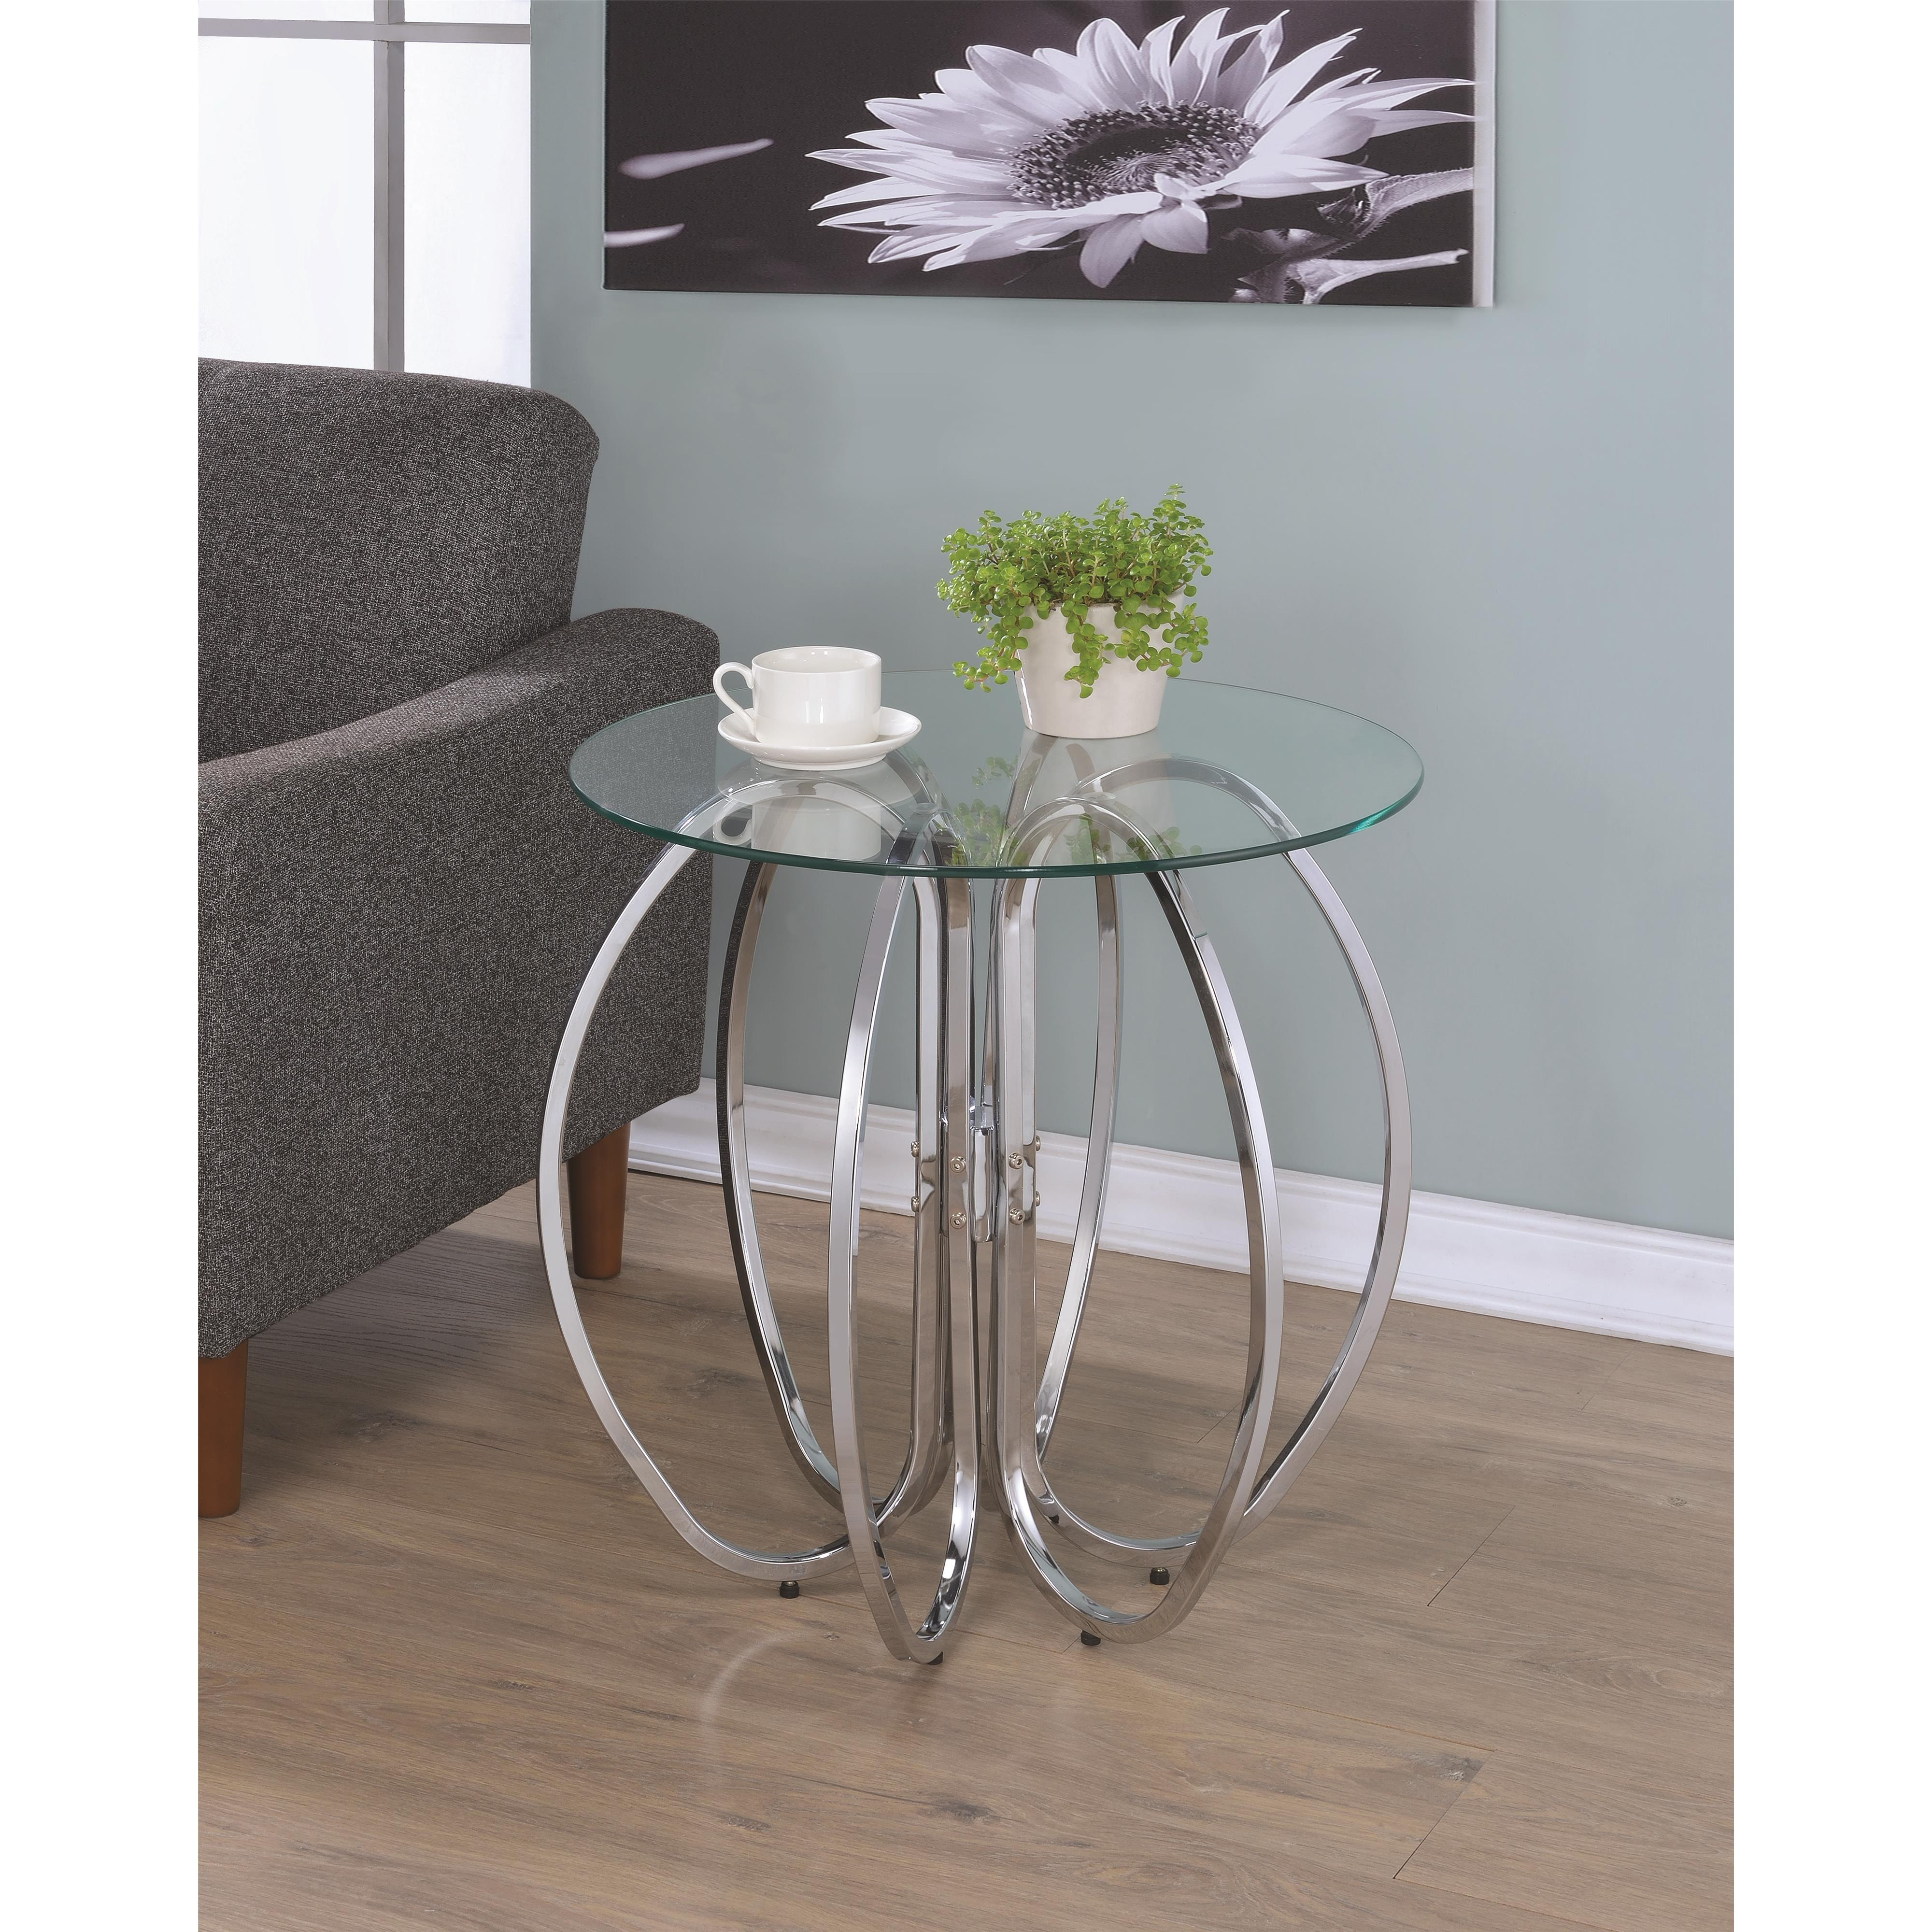 Coaster Accent Tables Accent Table - Item Number: 902633